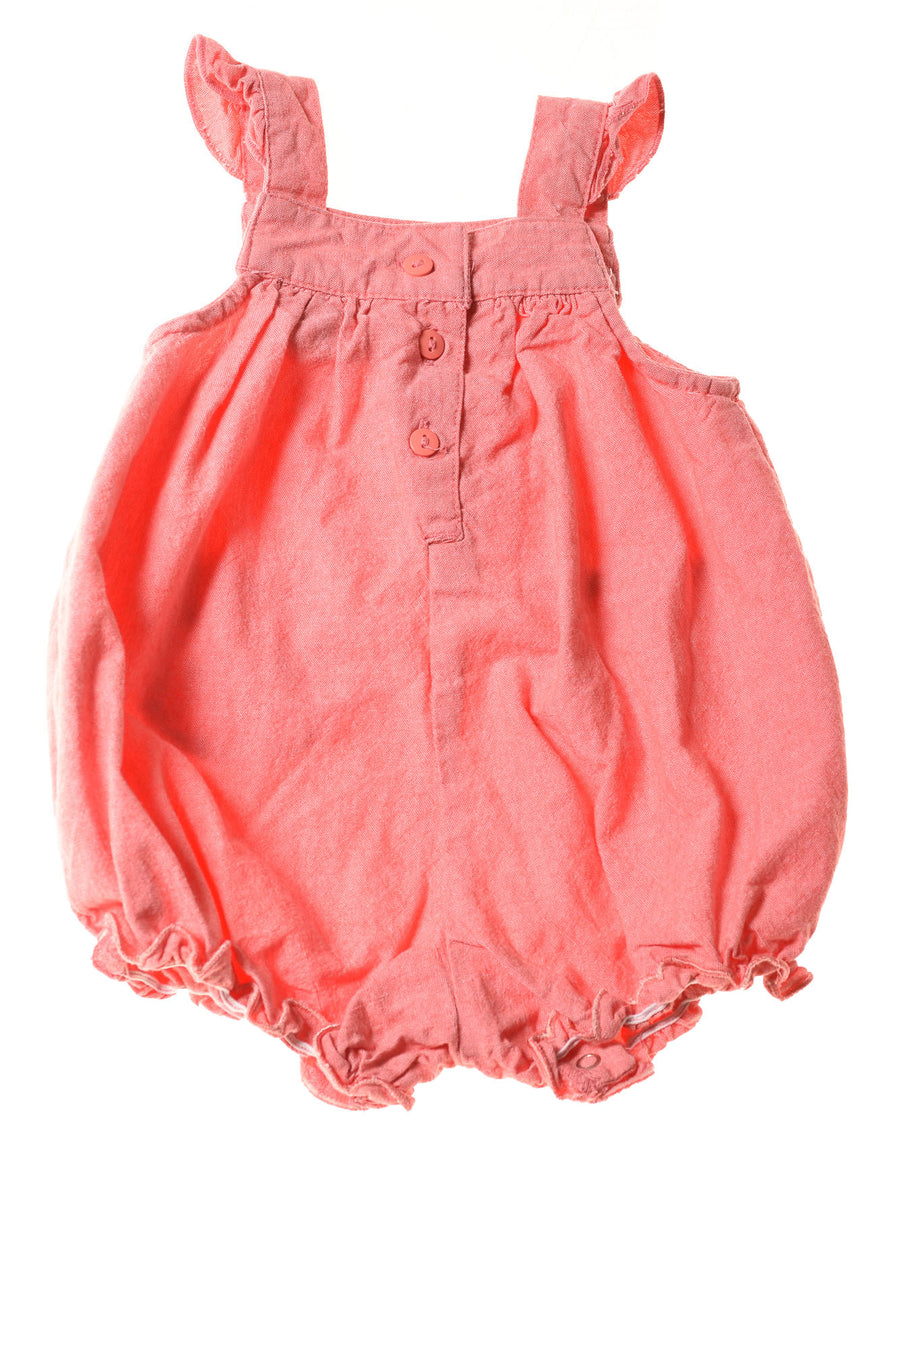 Baby Girl's Outfit By Faded Glory